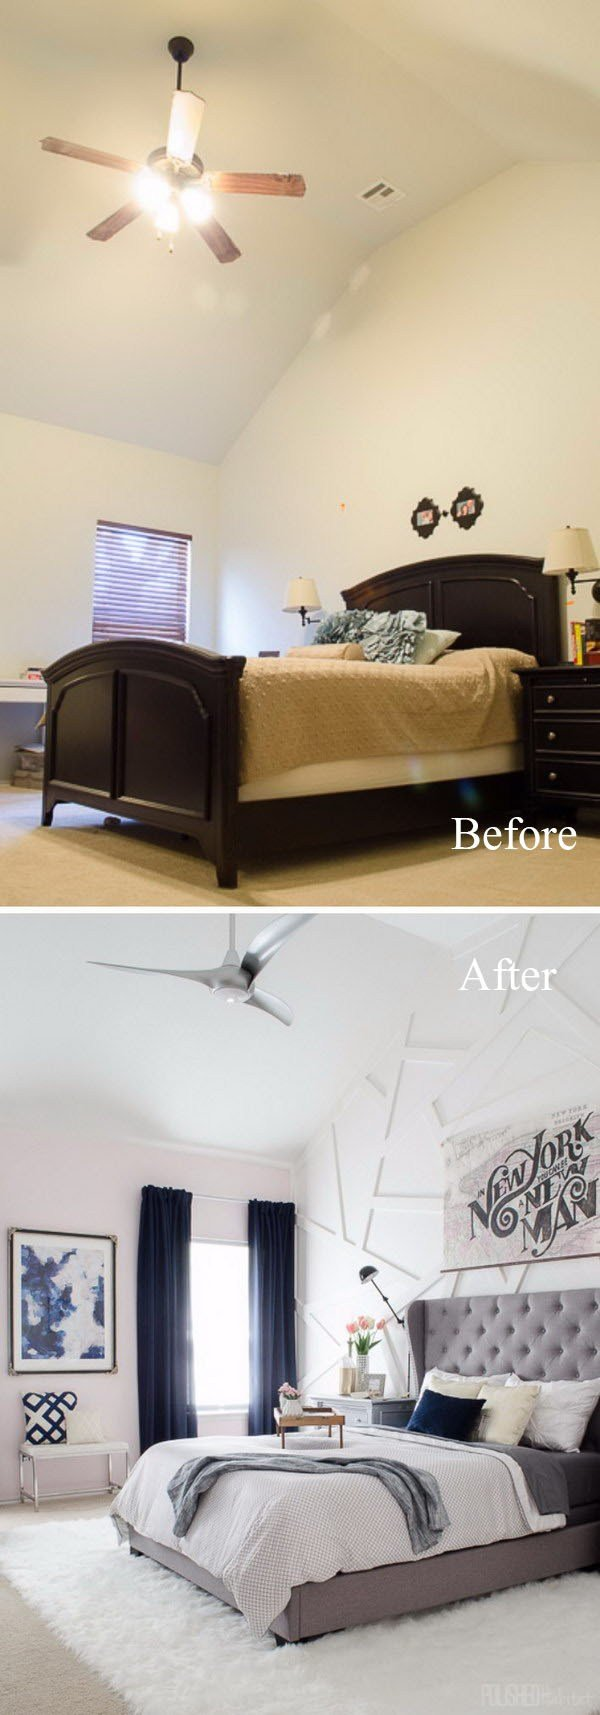 Best Creative Ways To Make Your Small Bedroom Look Bigger 2017 With Pictures